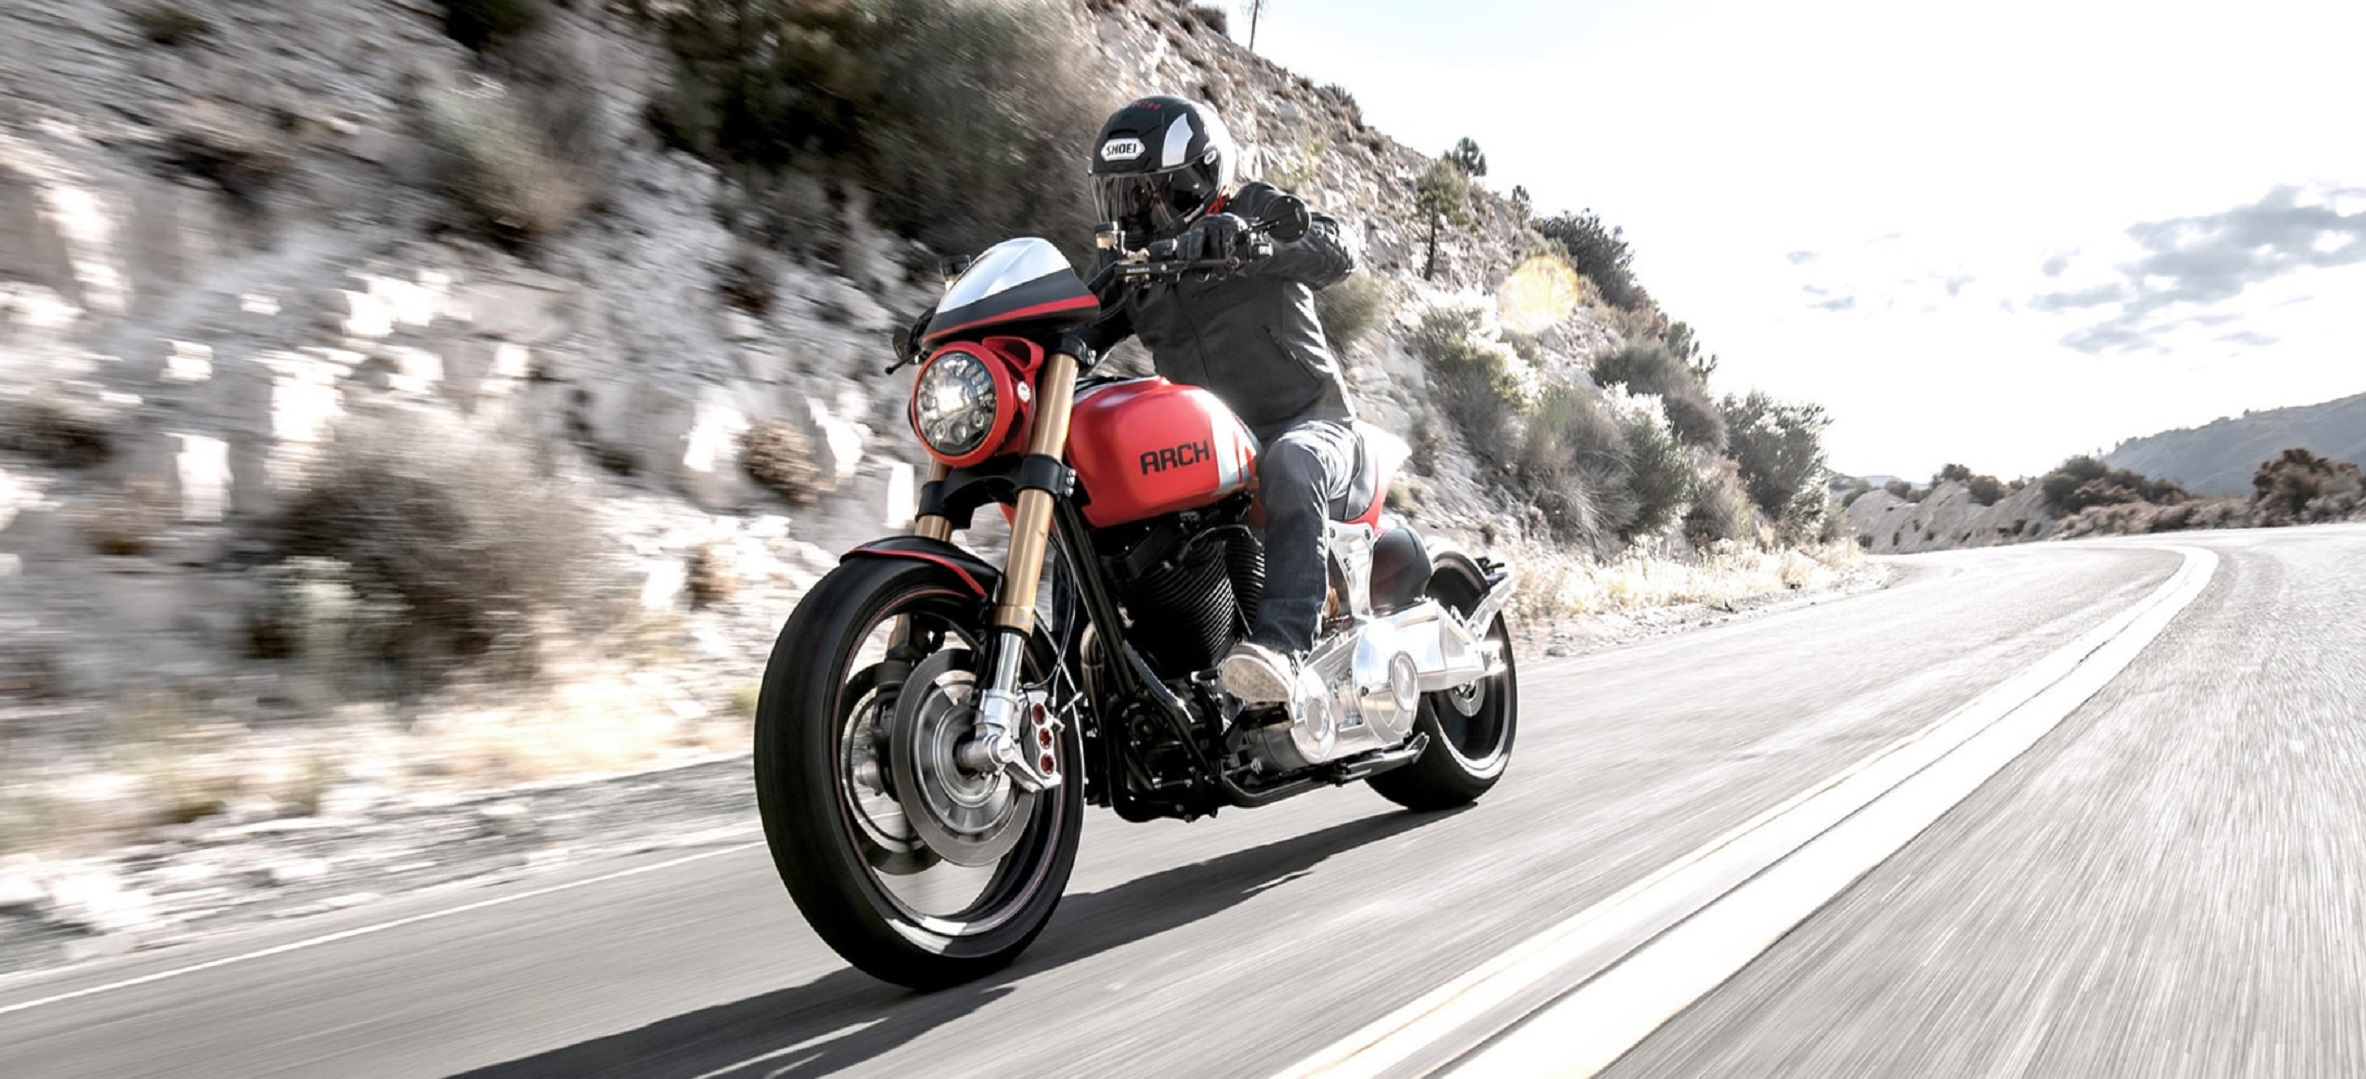 ARCH KRGT-1 riding along a highway